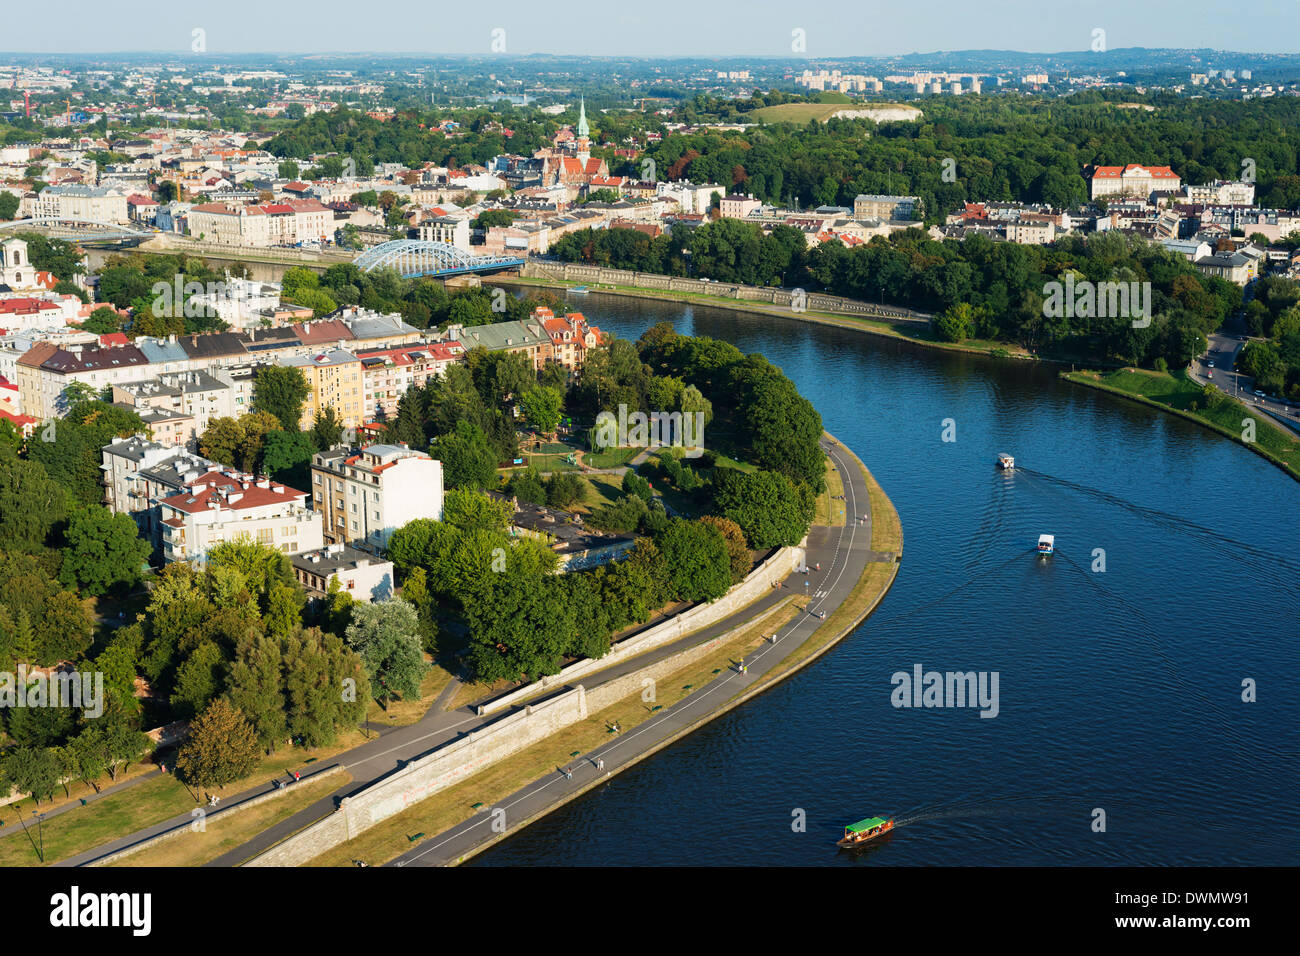 La Vistule, Cracovie, Pologne, Europe, Malopolska Photo Stock